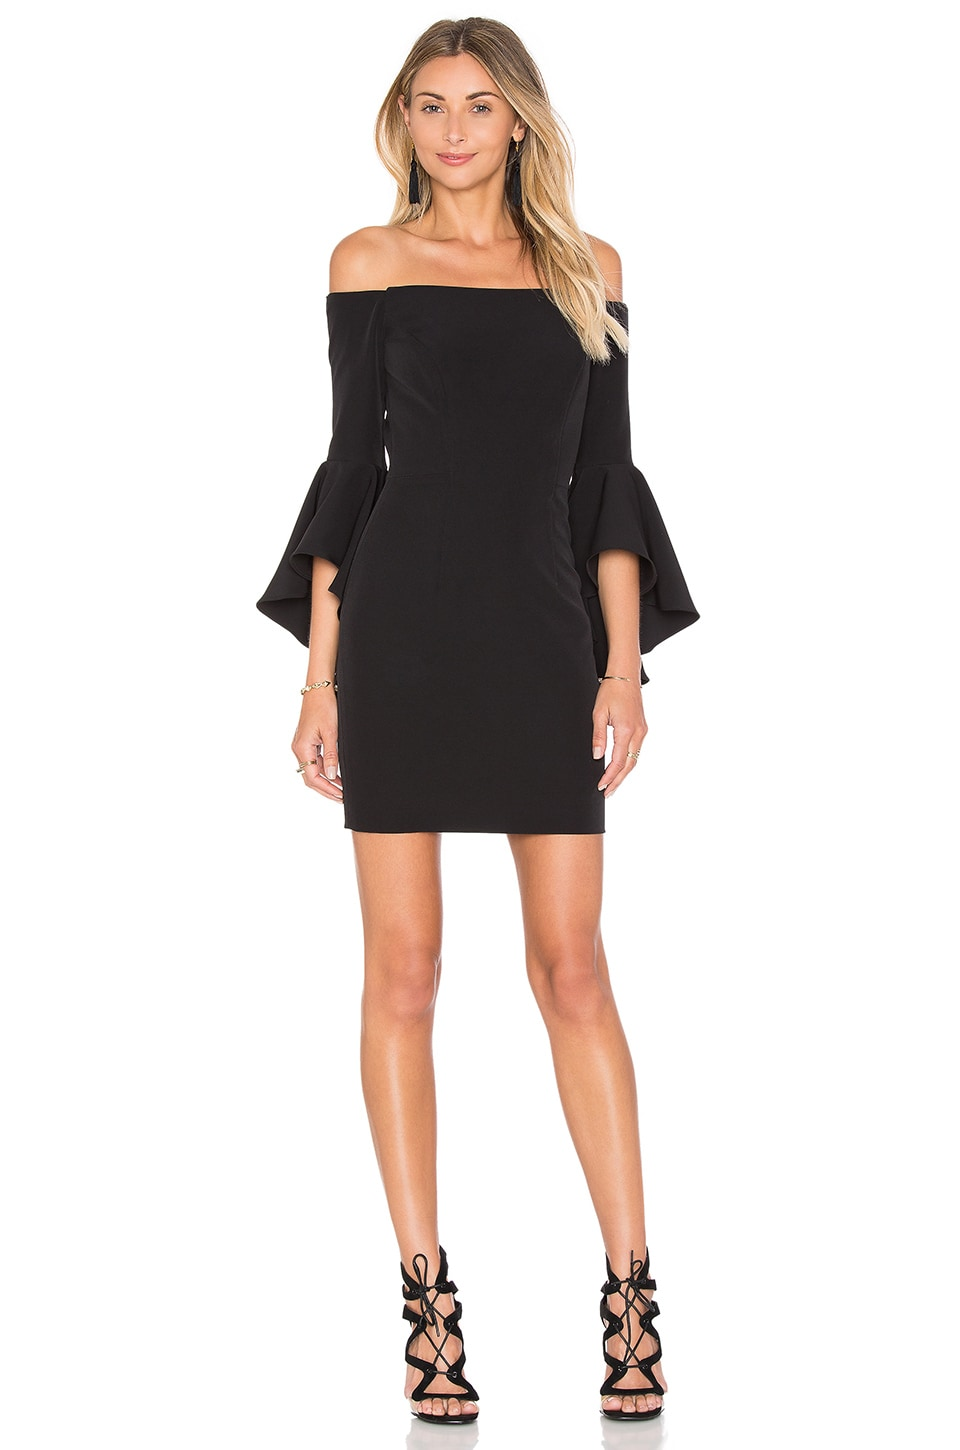 MILLY Cady Selena Mini Dress in Black | REVOLVE